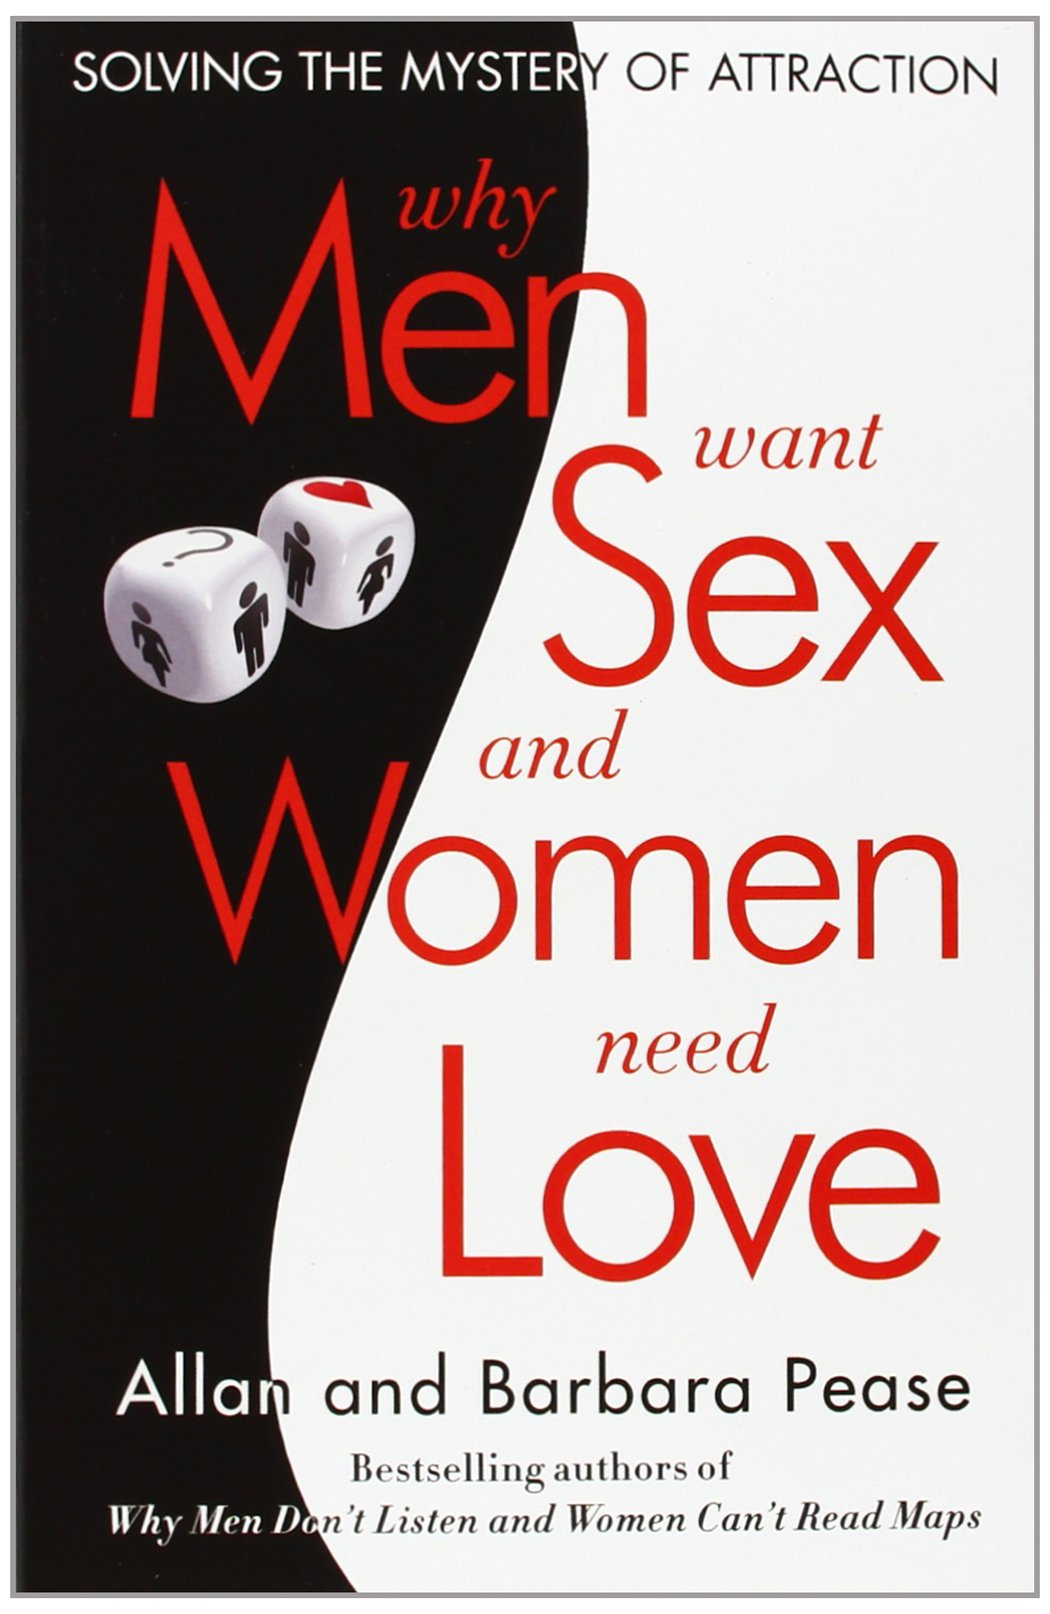 Why men want sex and women need love solving the mystery of attraction barbara pease allan pease 9780307591593 amazon com books